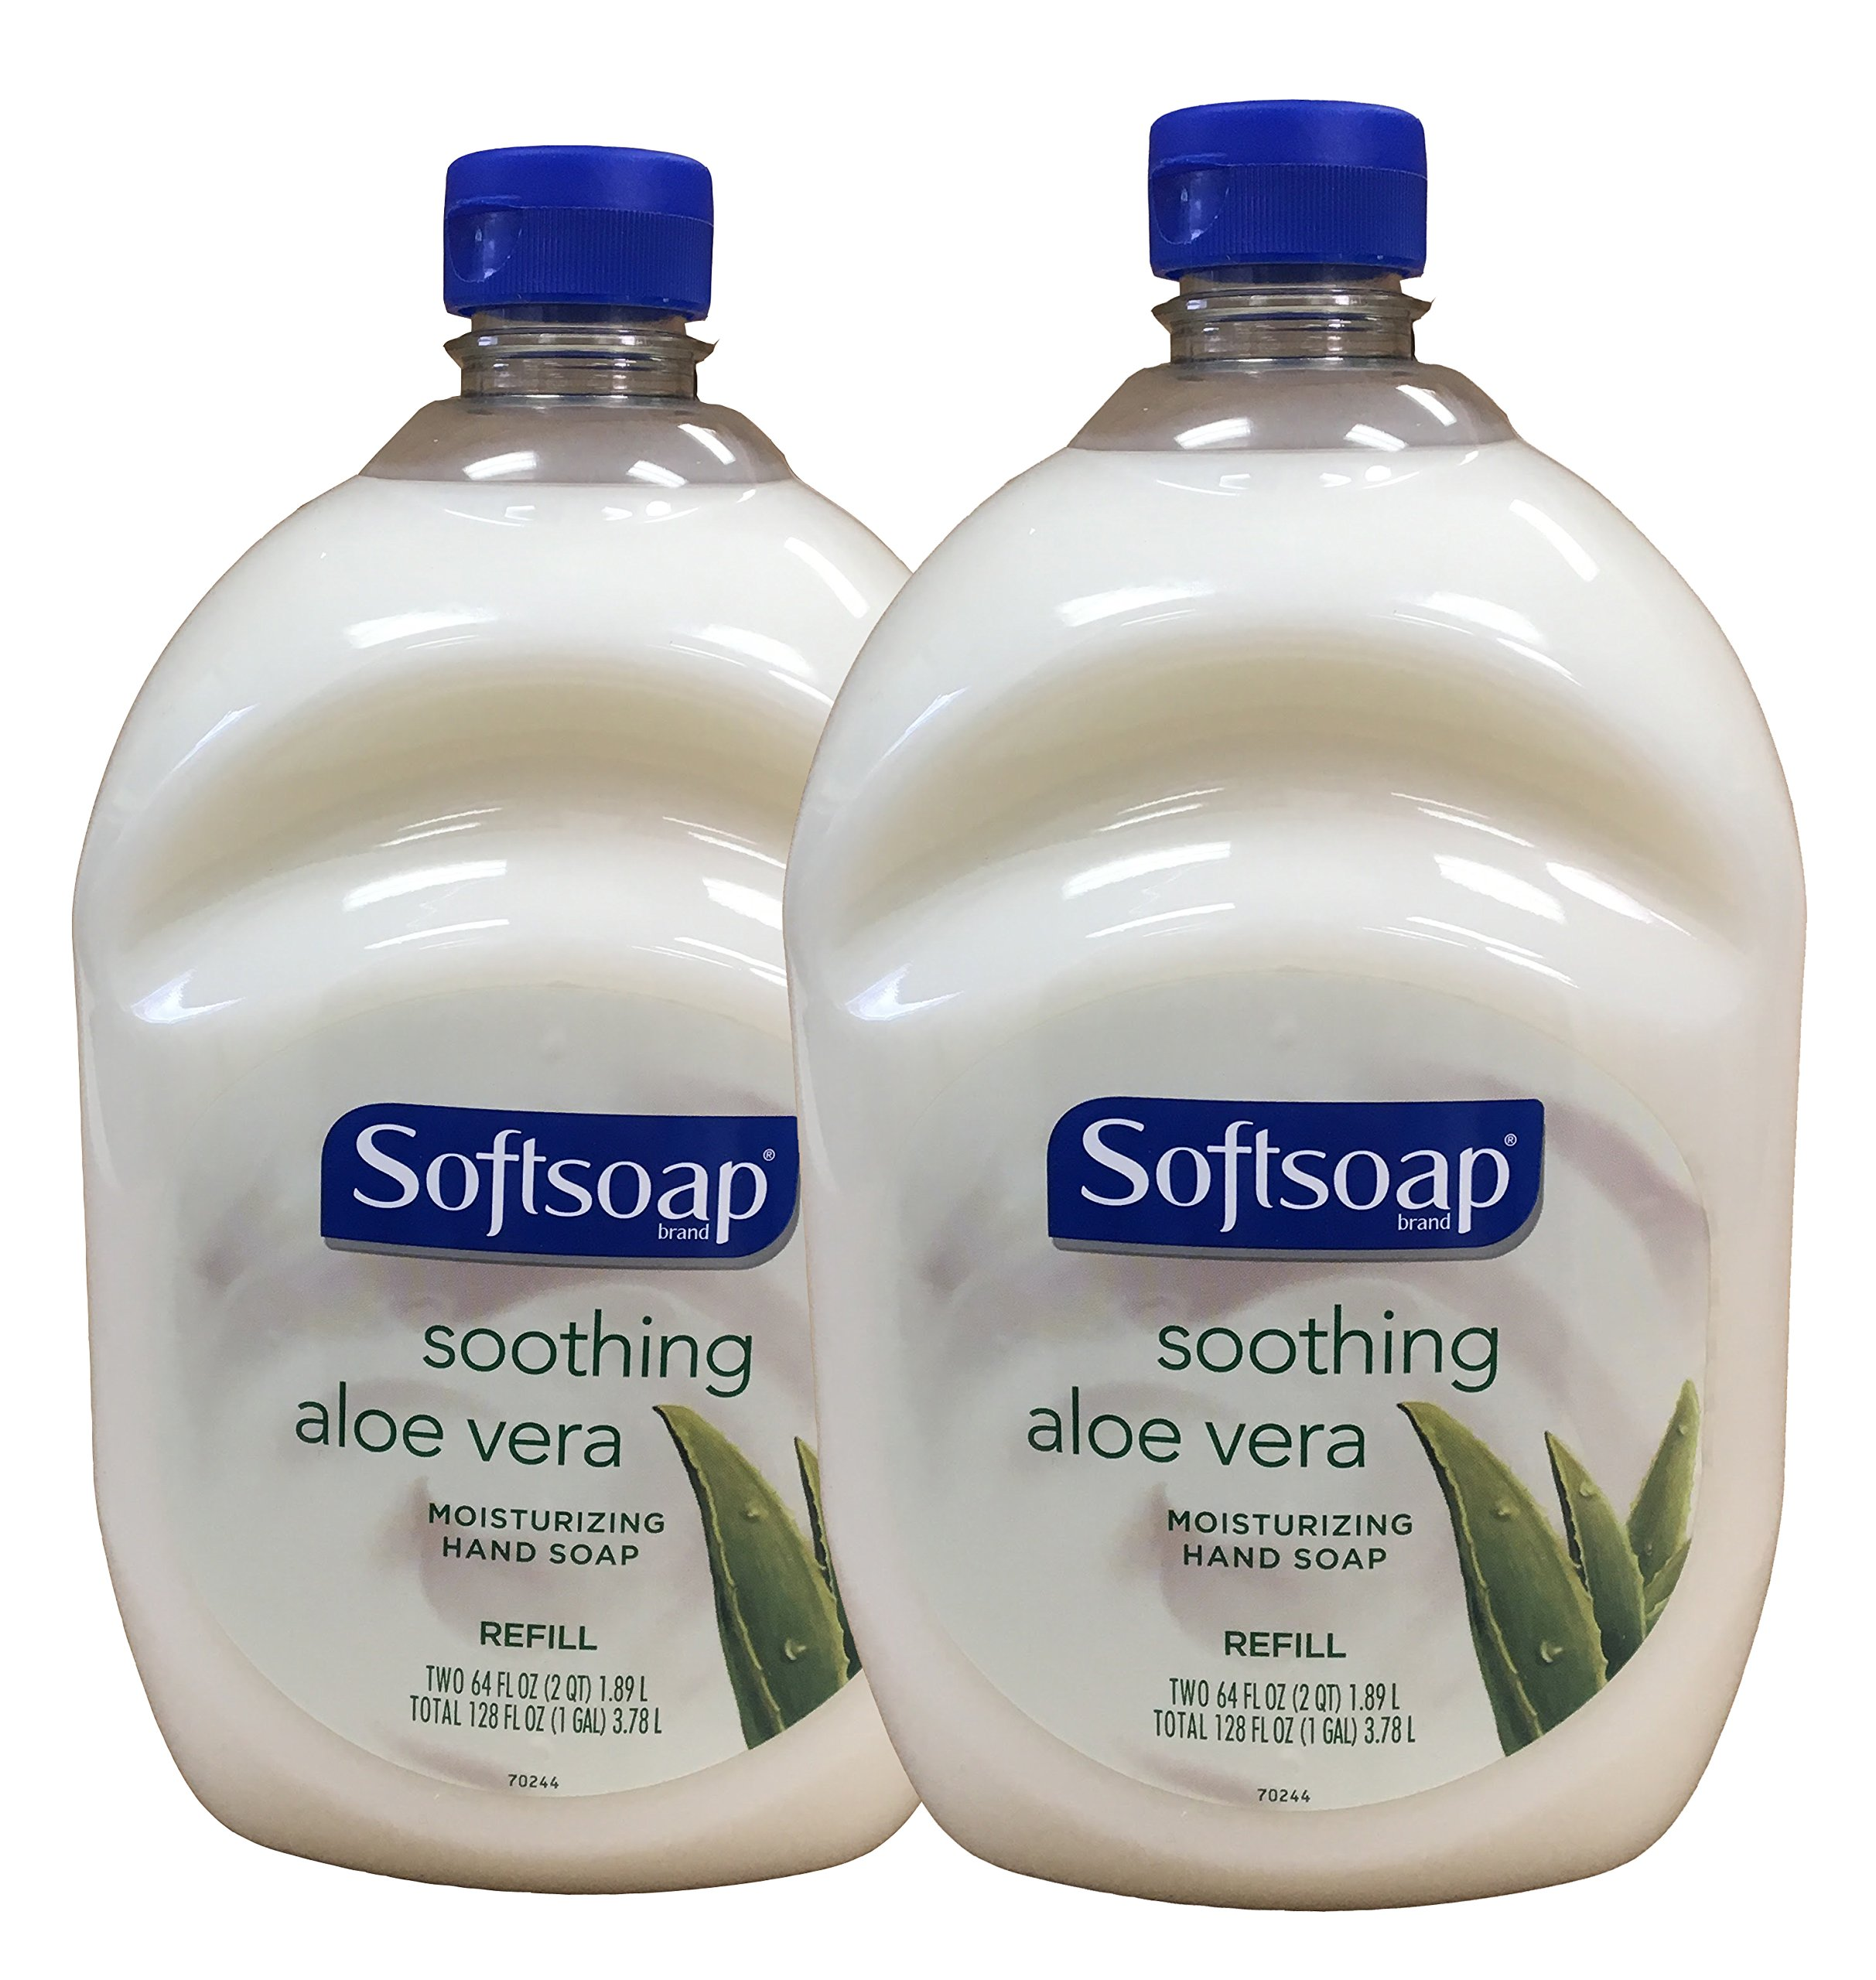 Softsoap Hand Soap Soothing Aloe Vera Moisturizing Hand Soap Refill 64 Fluid Ounce Bottle (Pack of 2)